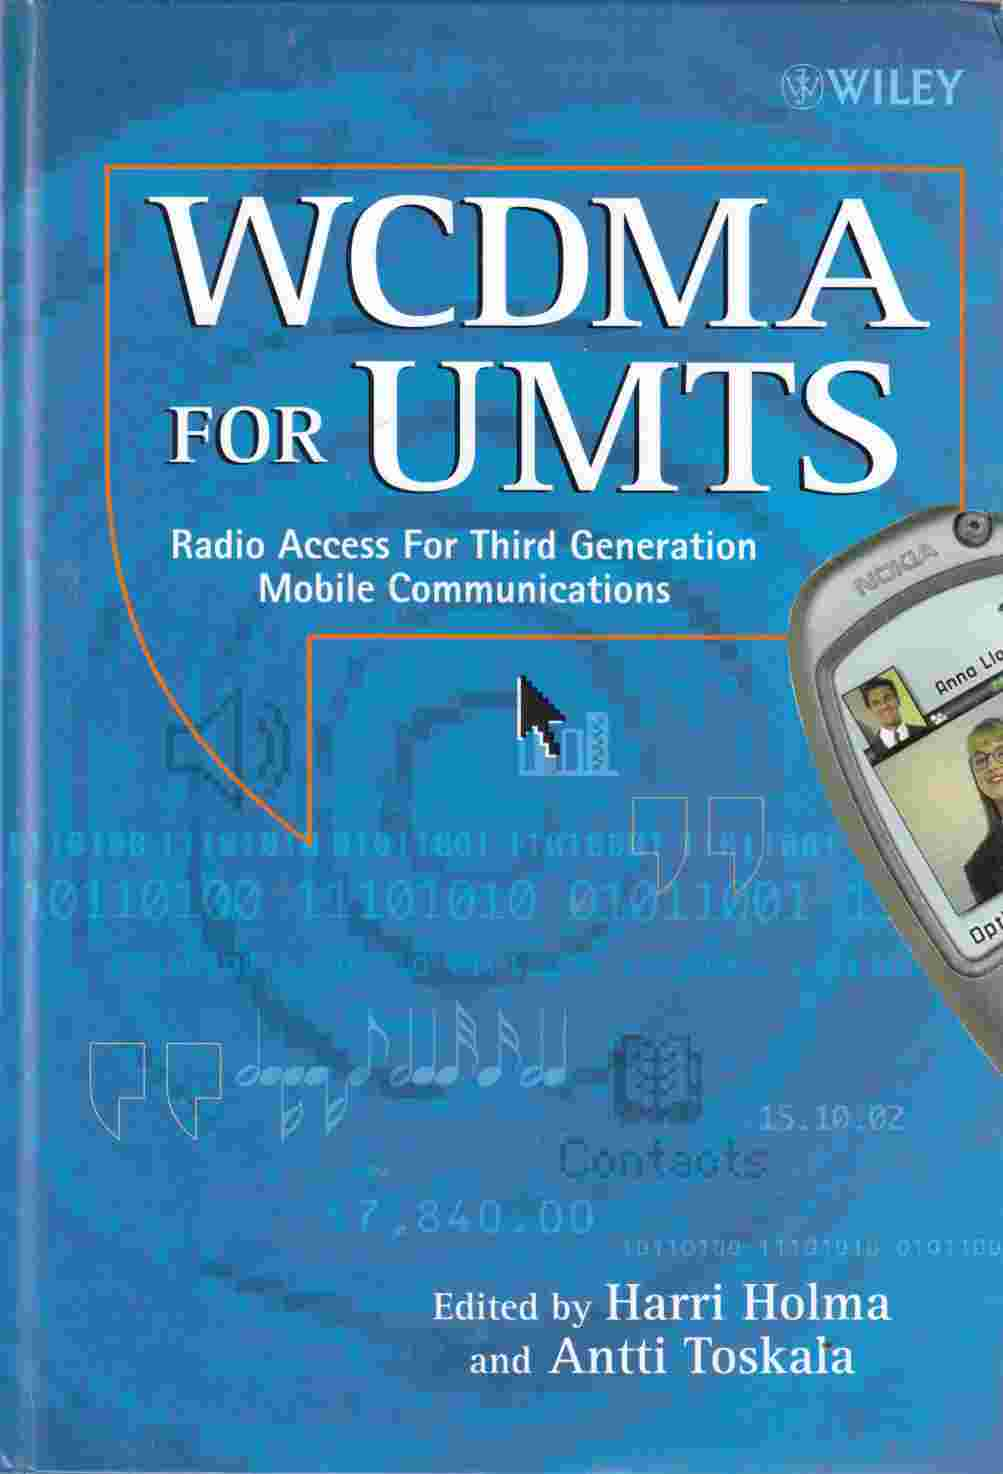 Image for WCDMA for UMTS Radio Access for Third Generation Mobile Communications